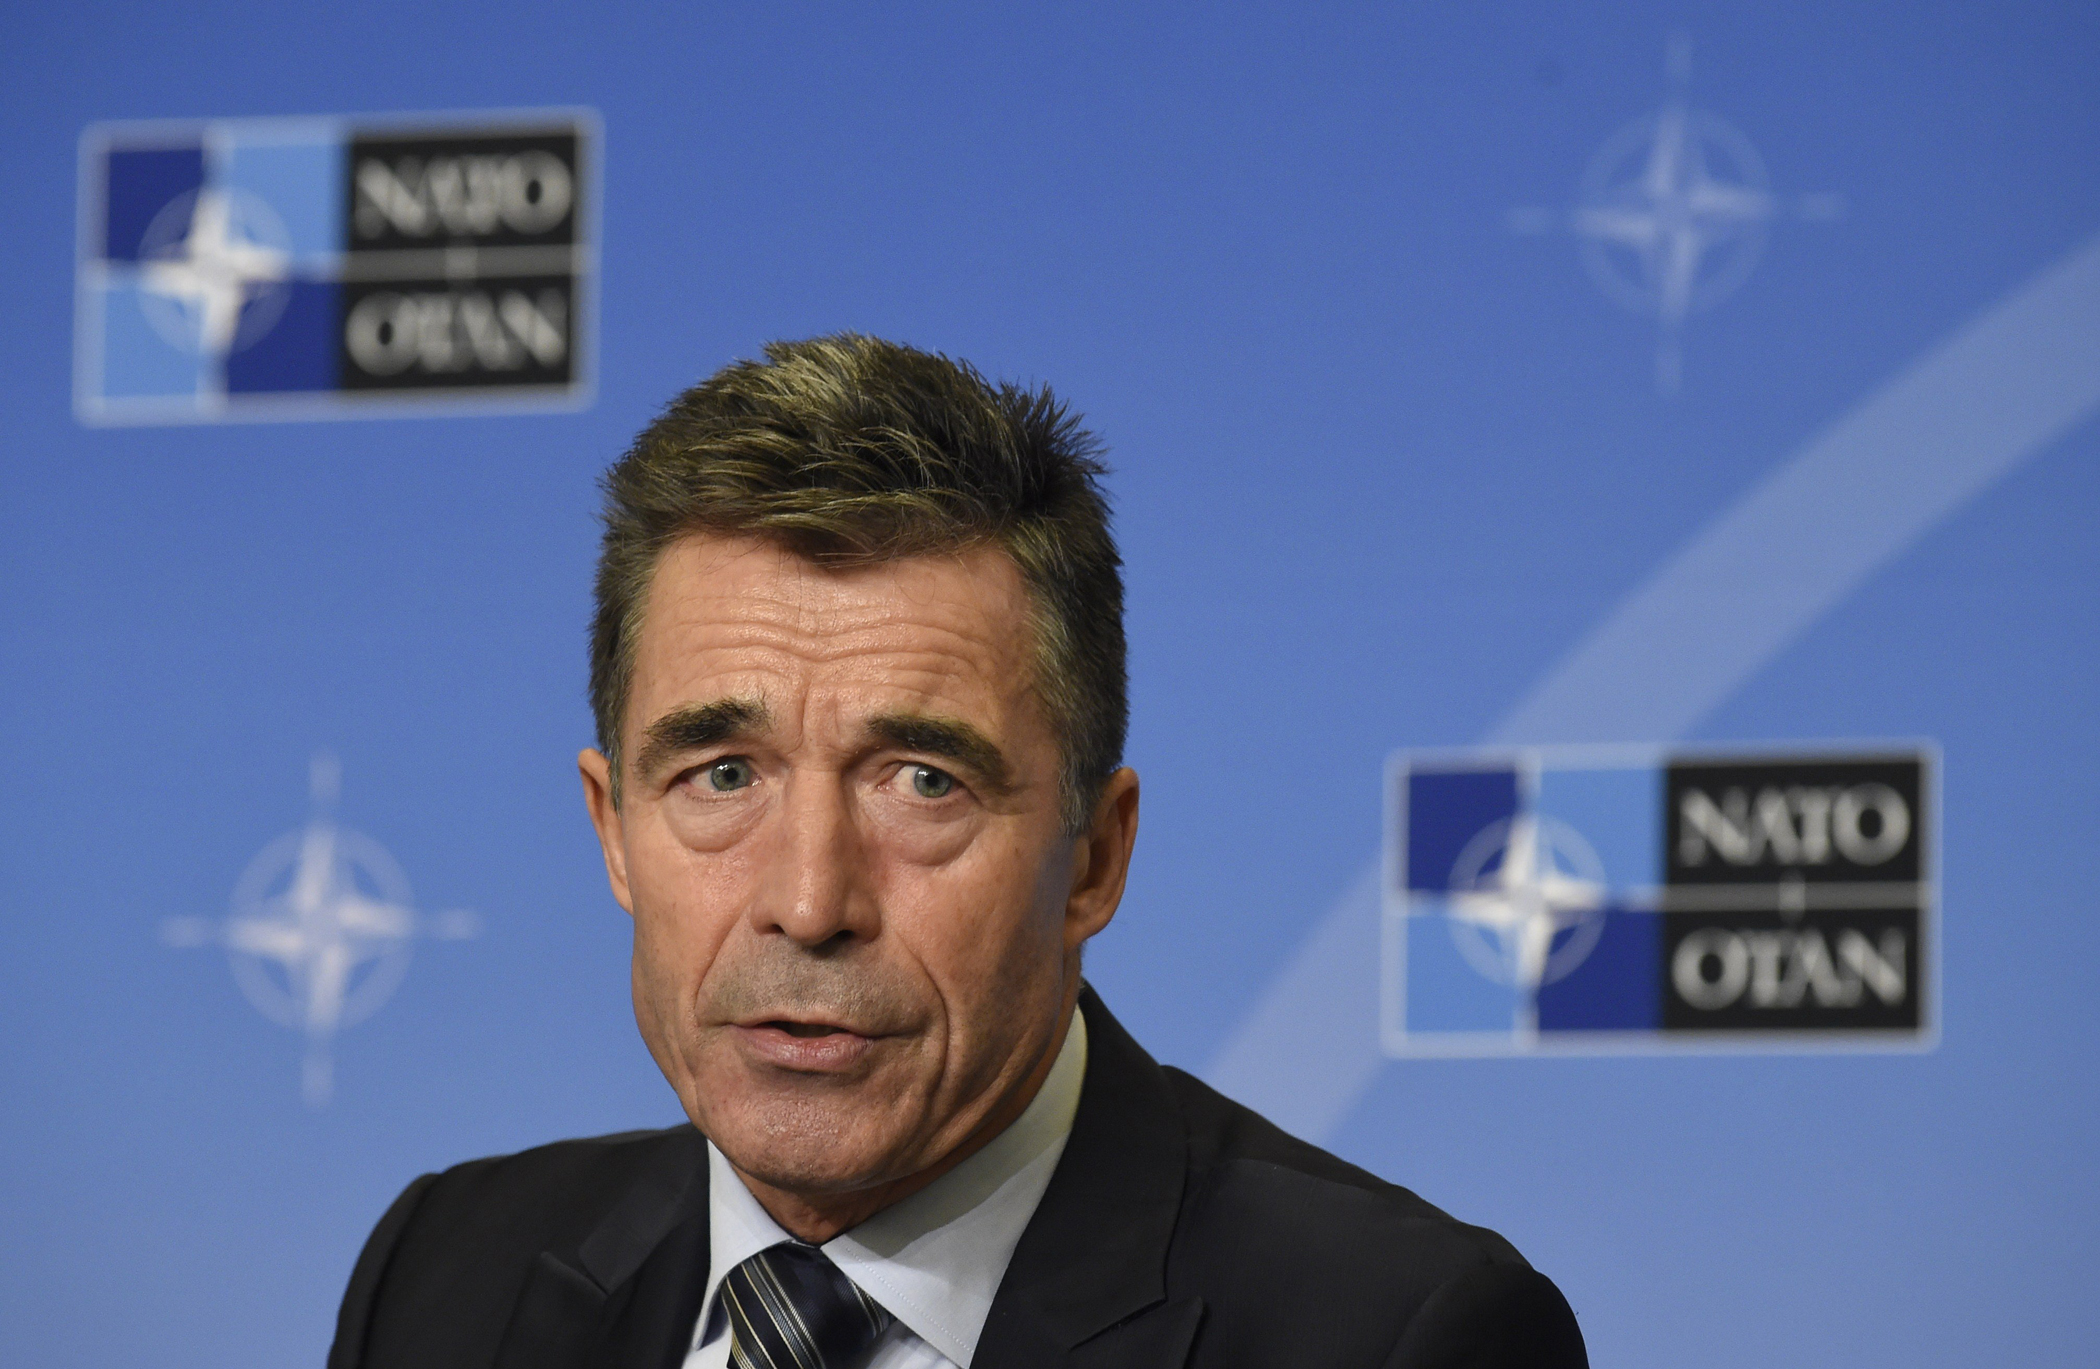 NATO Secretary General Anders Fogh Rasmussen gives a press on Sept. 1, 2014, in Brussels